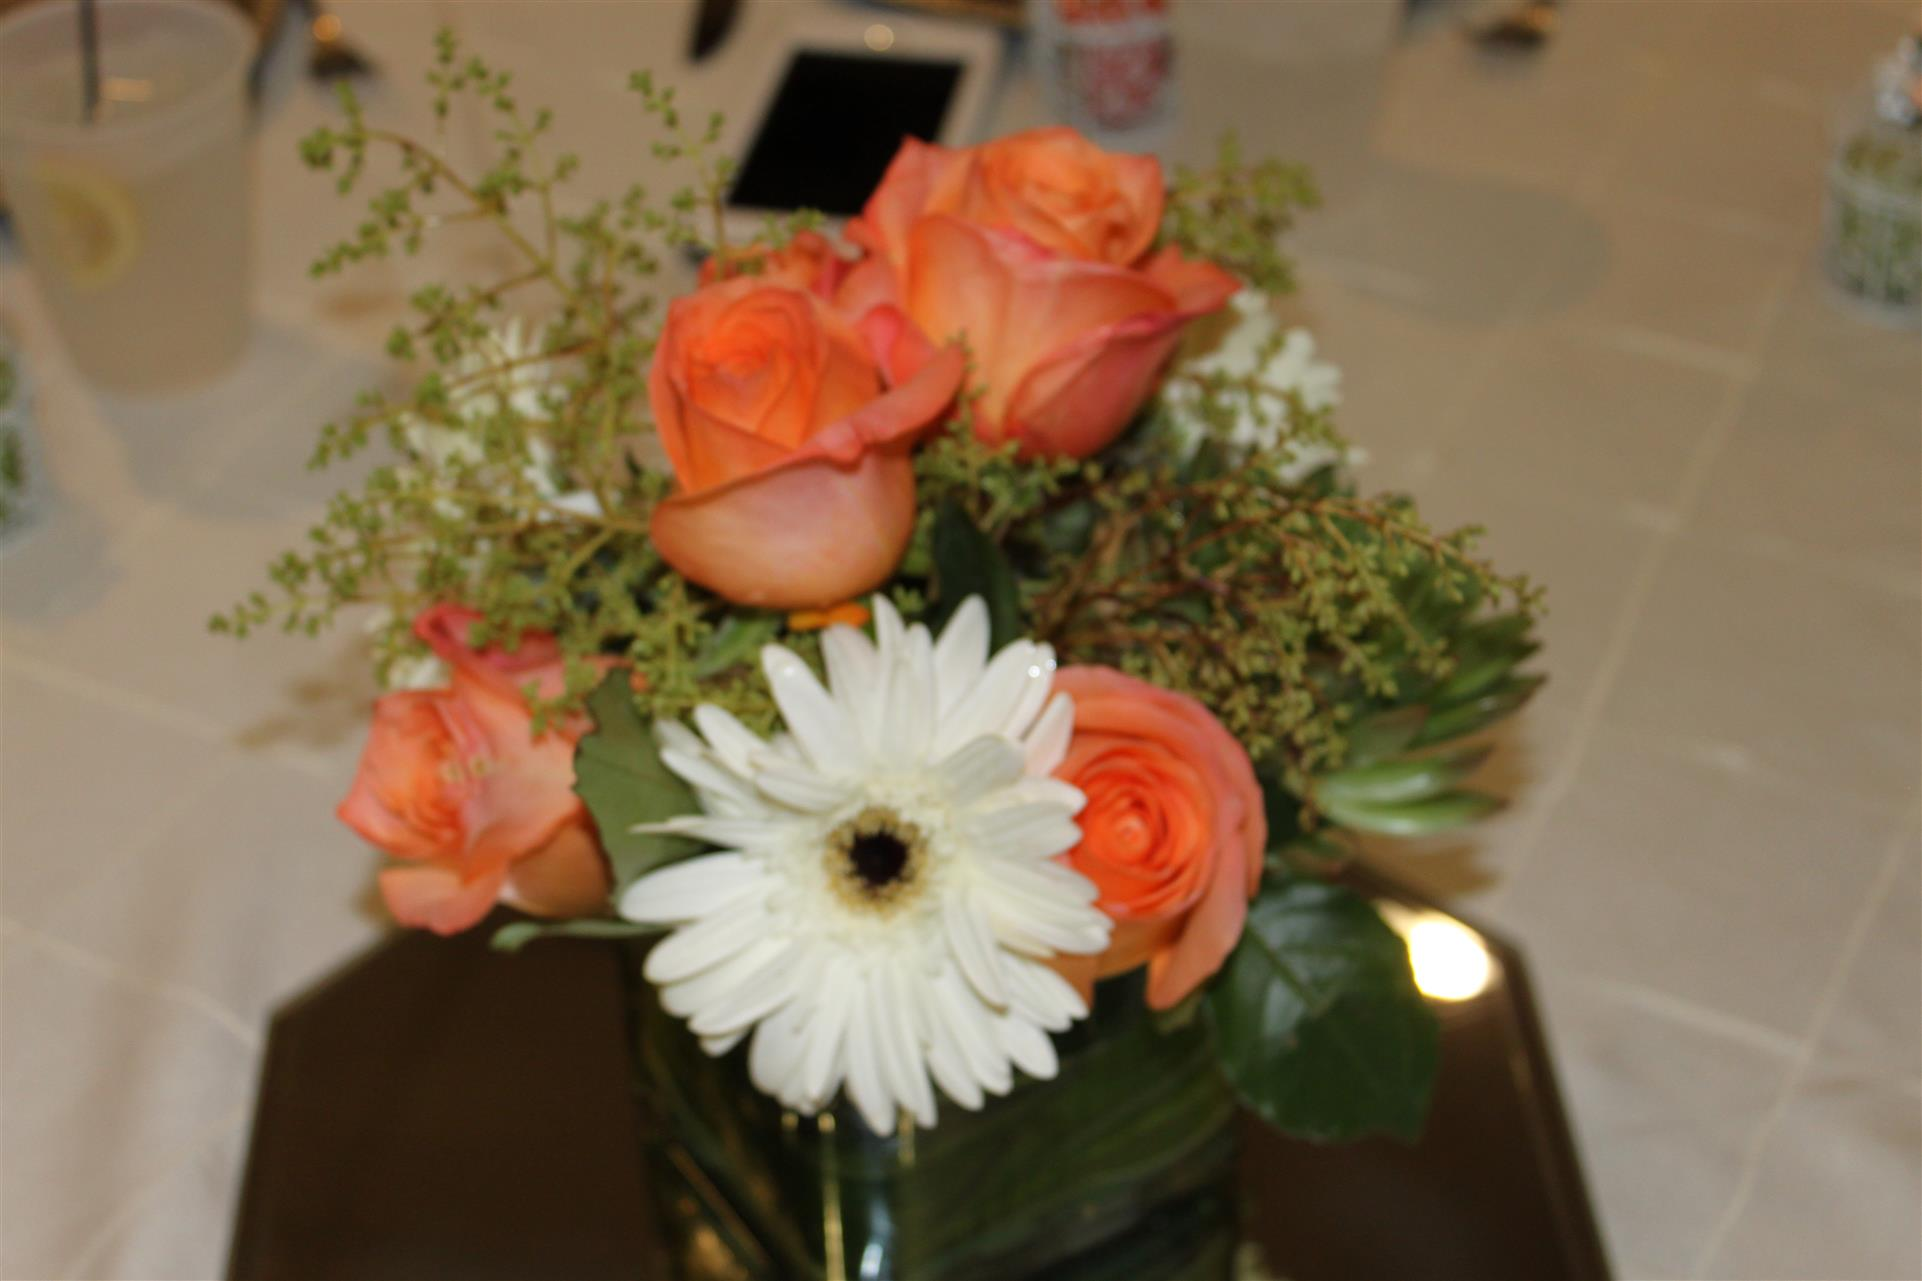 floral arrangement for a centerpiece with roses and daisies